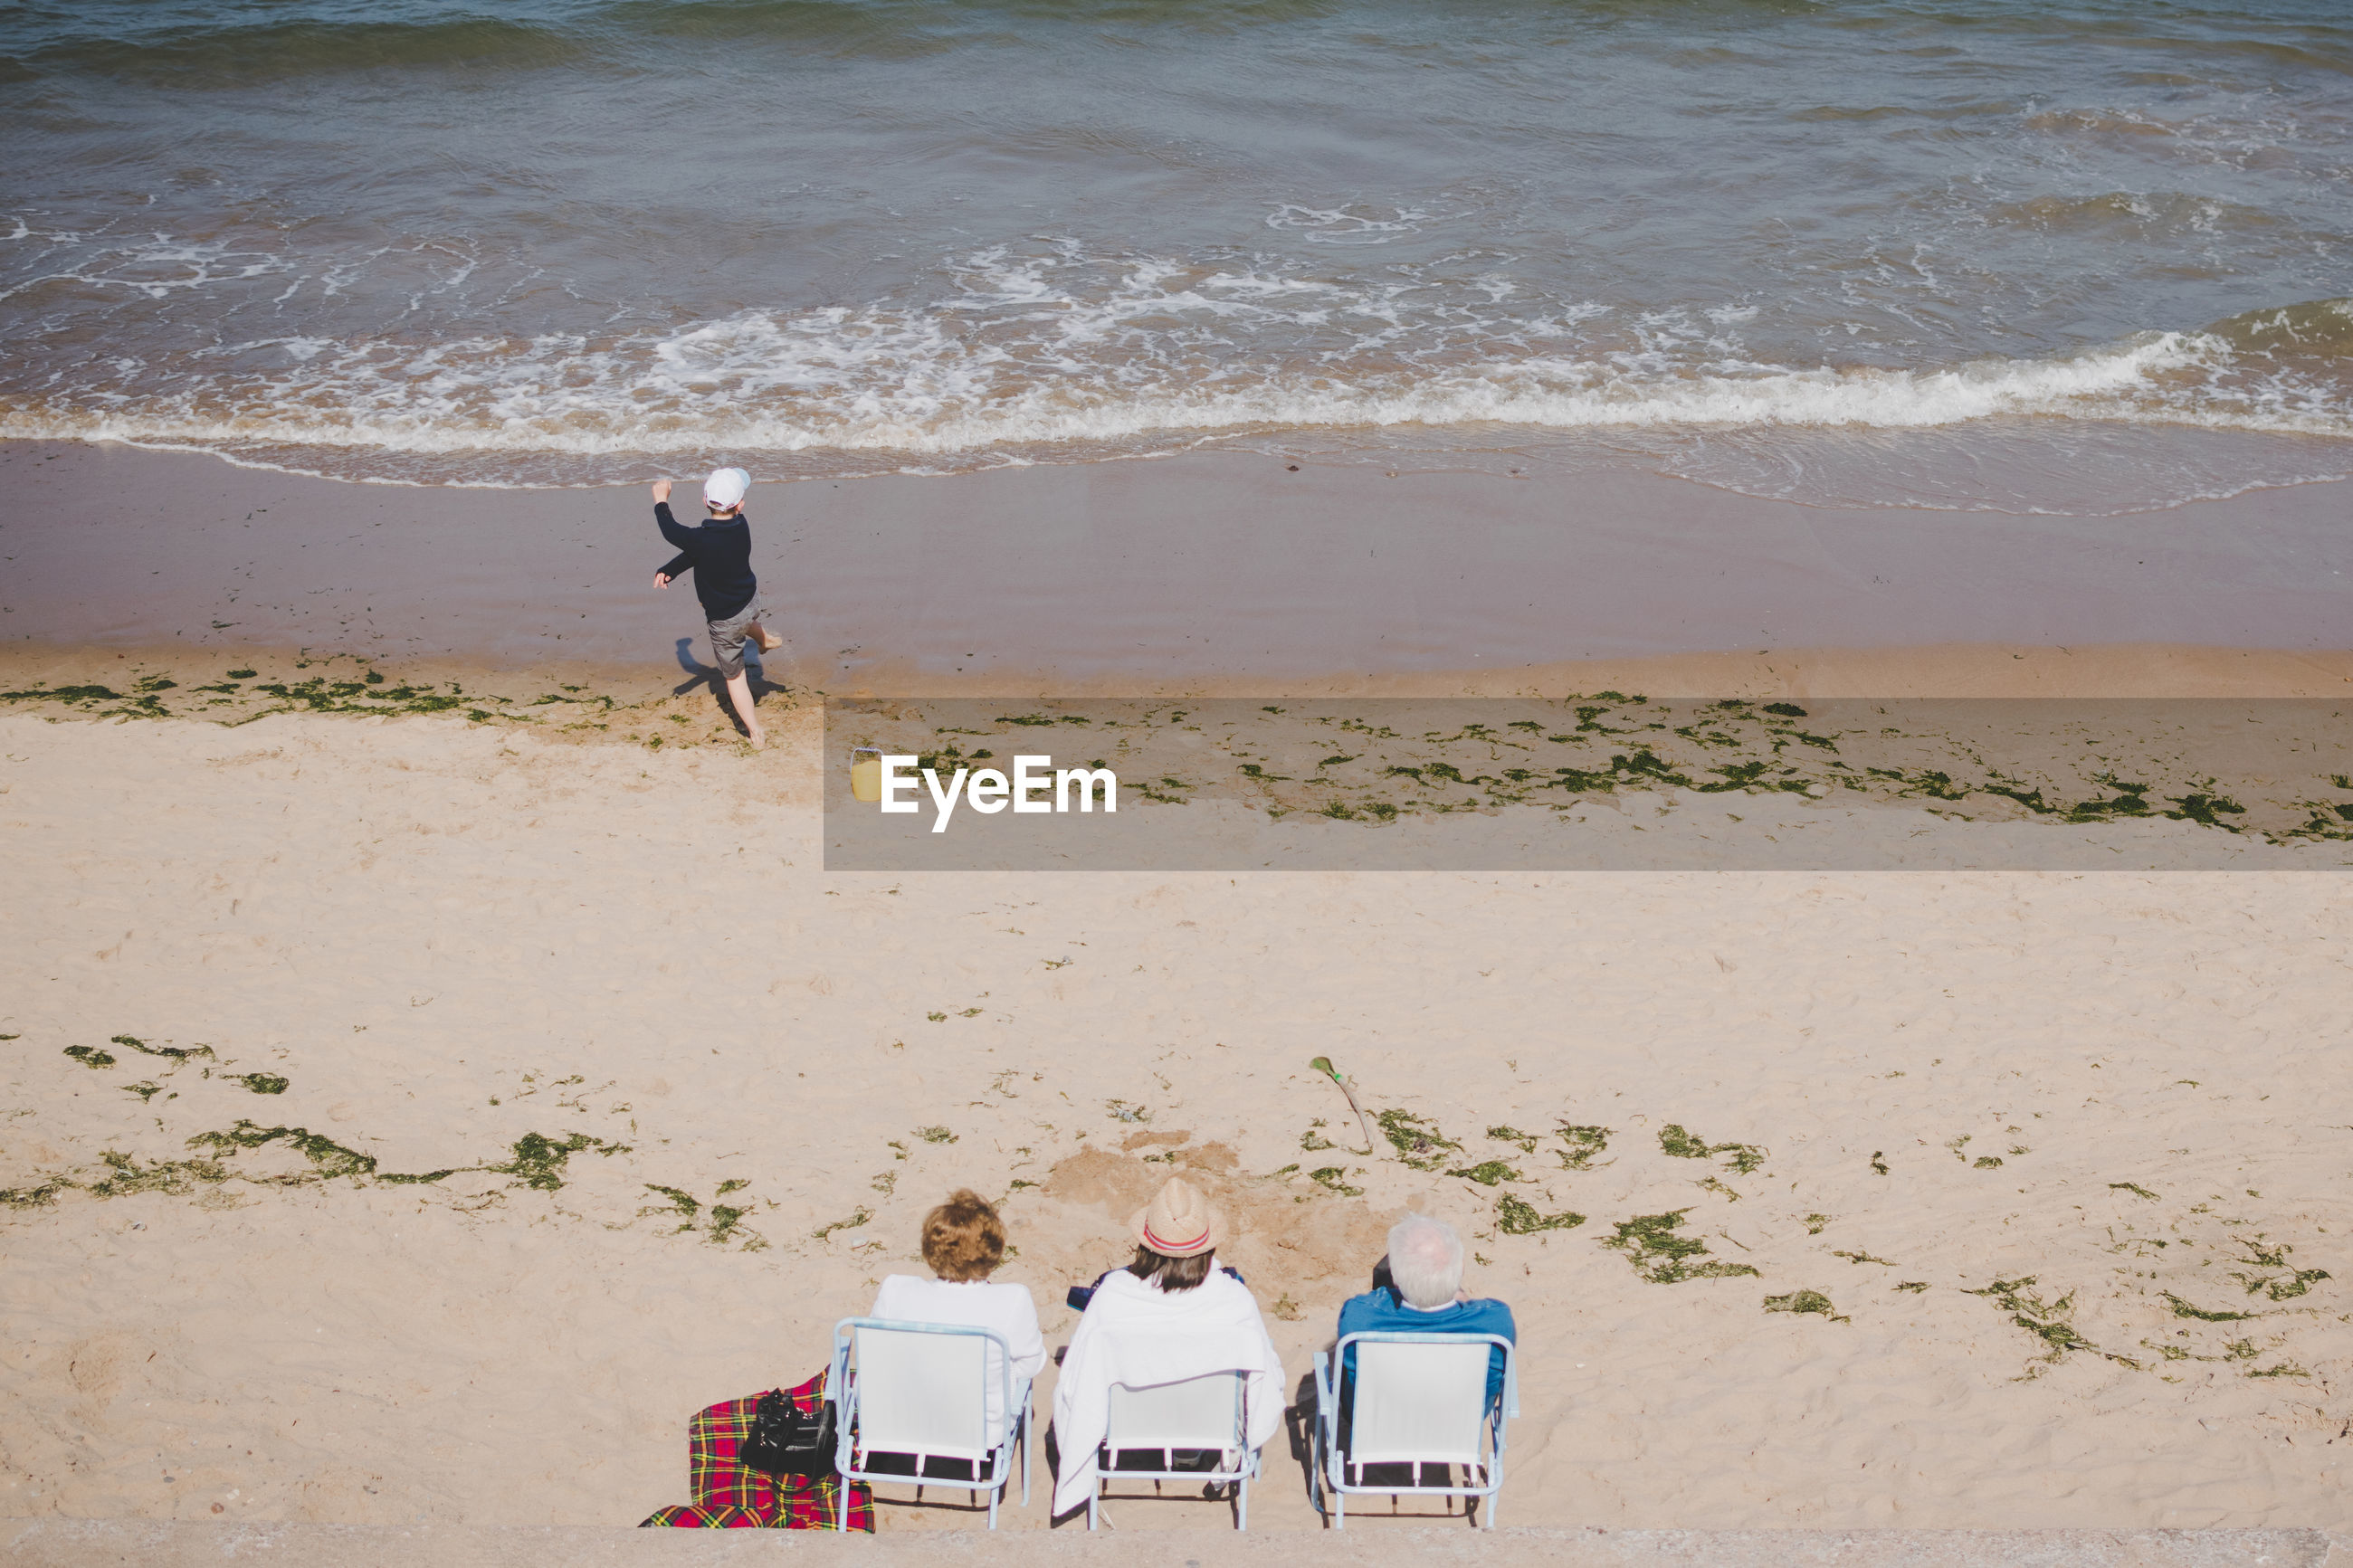 HIGH ANGLE VIEW OF PEOPLE ON SHORE